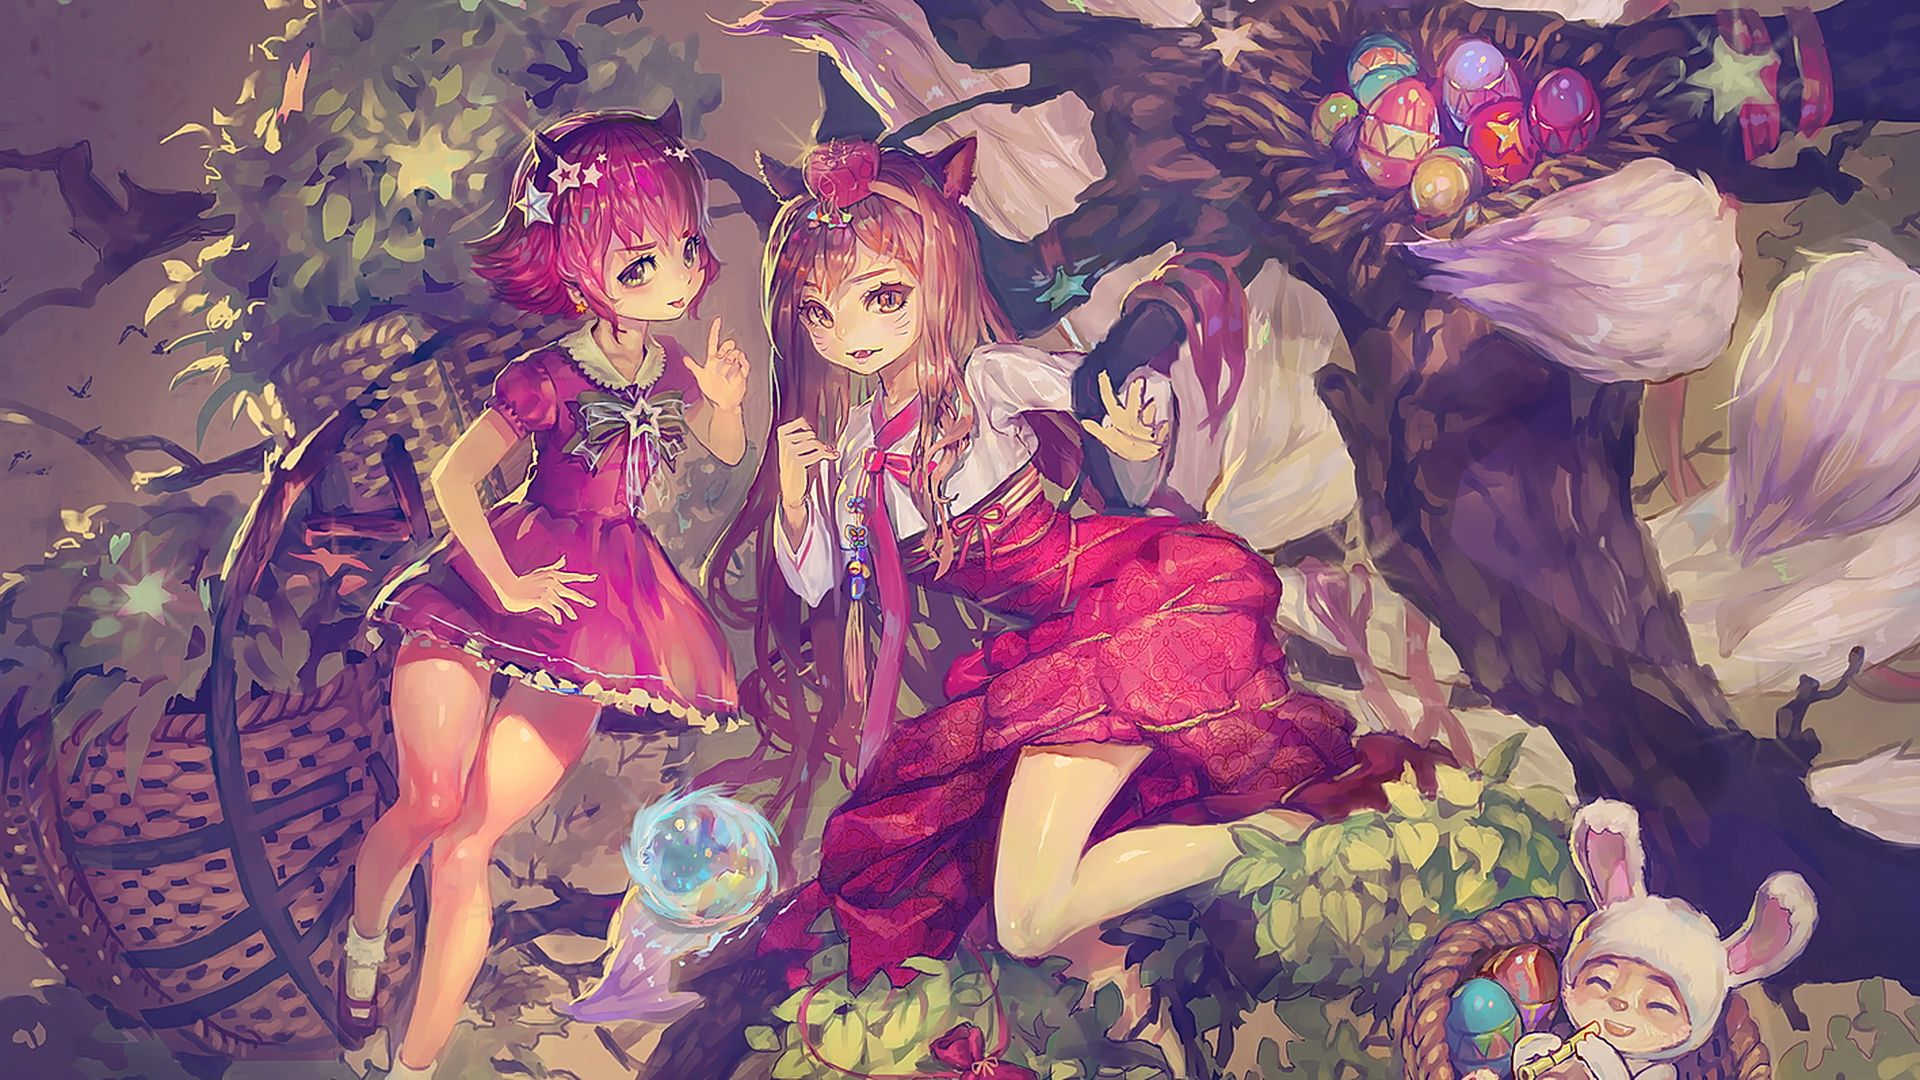 Anime Wallpaper Free Hd Wallpapers Backgrounds Download - Anime Christmas Wallpaper 4k - HD Wallpaper